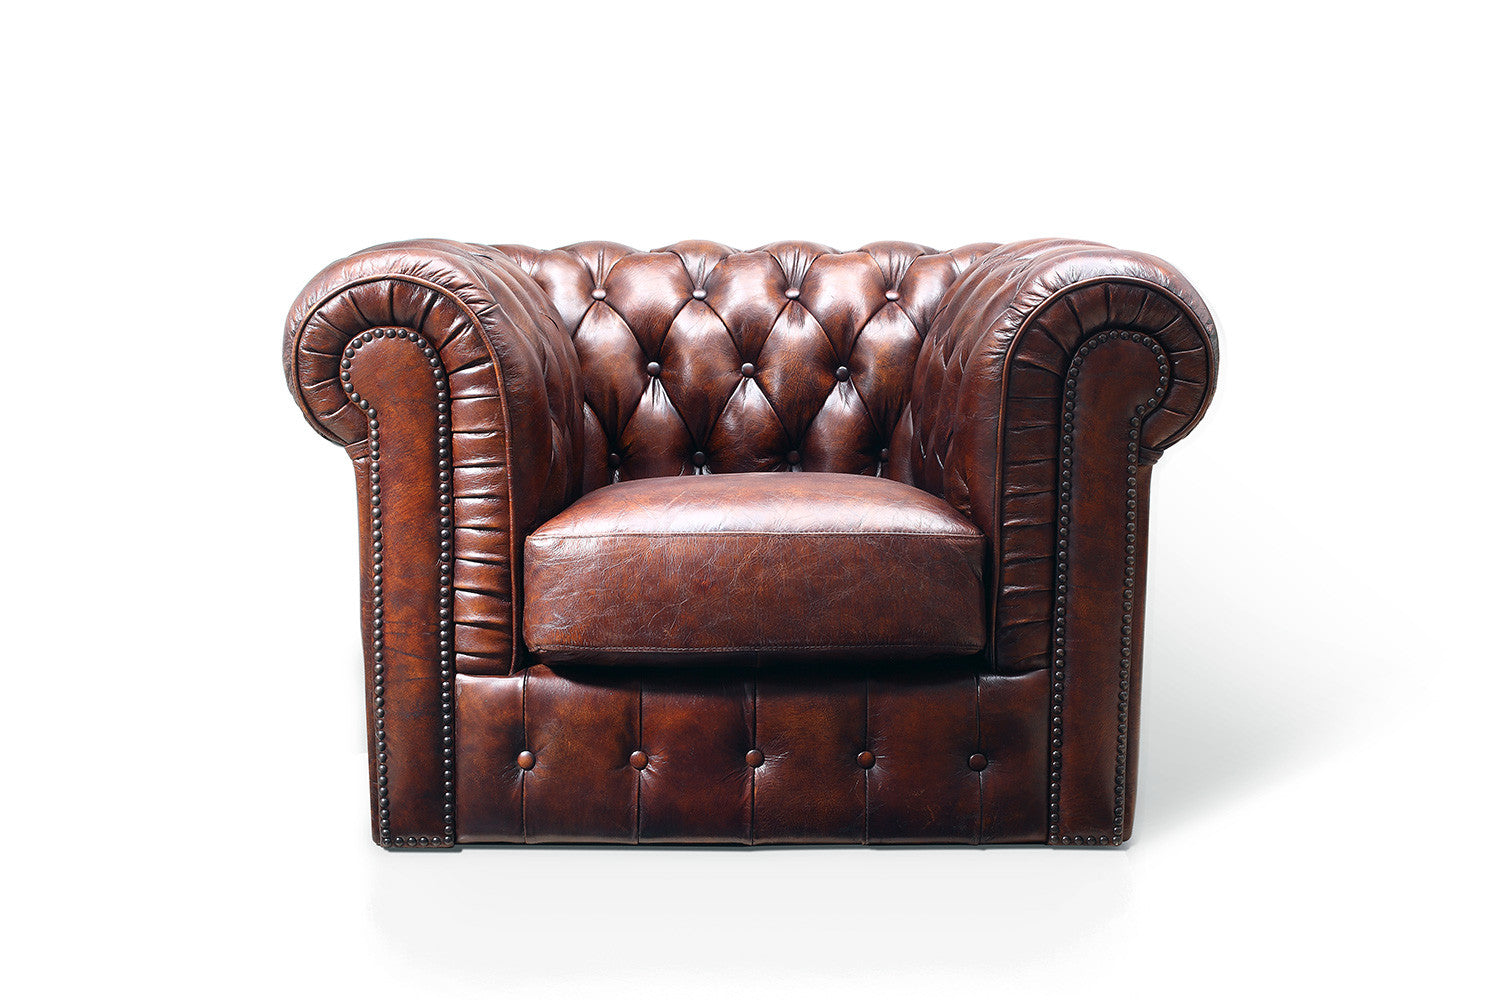 Fauteuil chesterfield original rose moore - Fauteuil chesterfield cuir ...